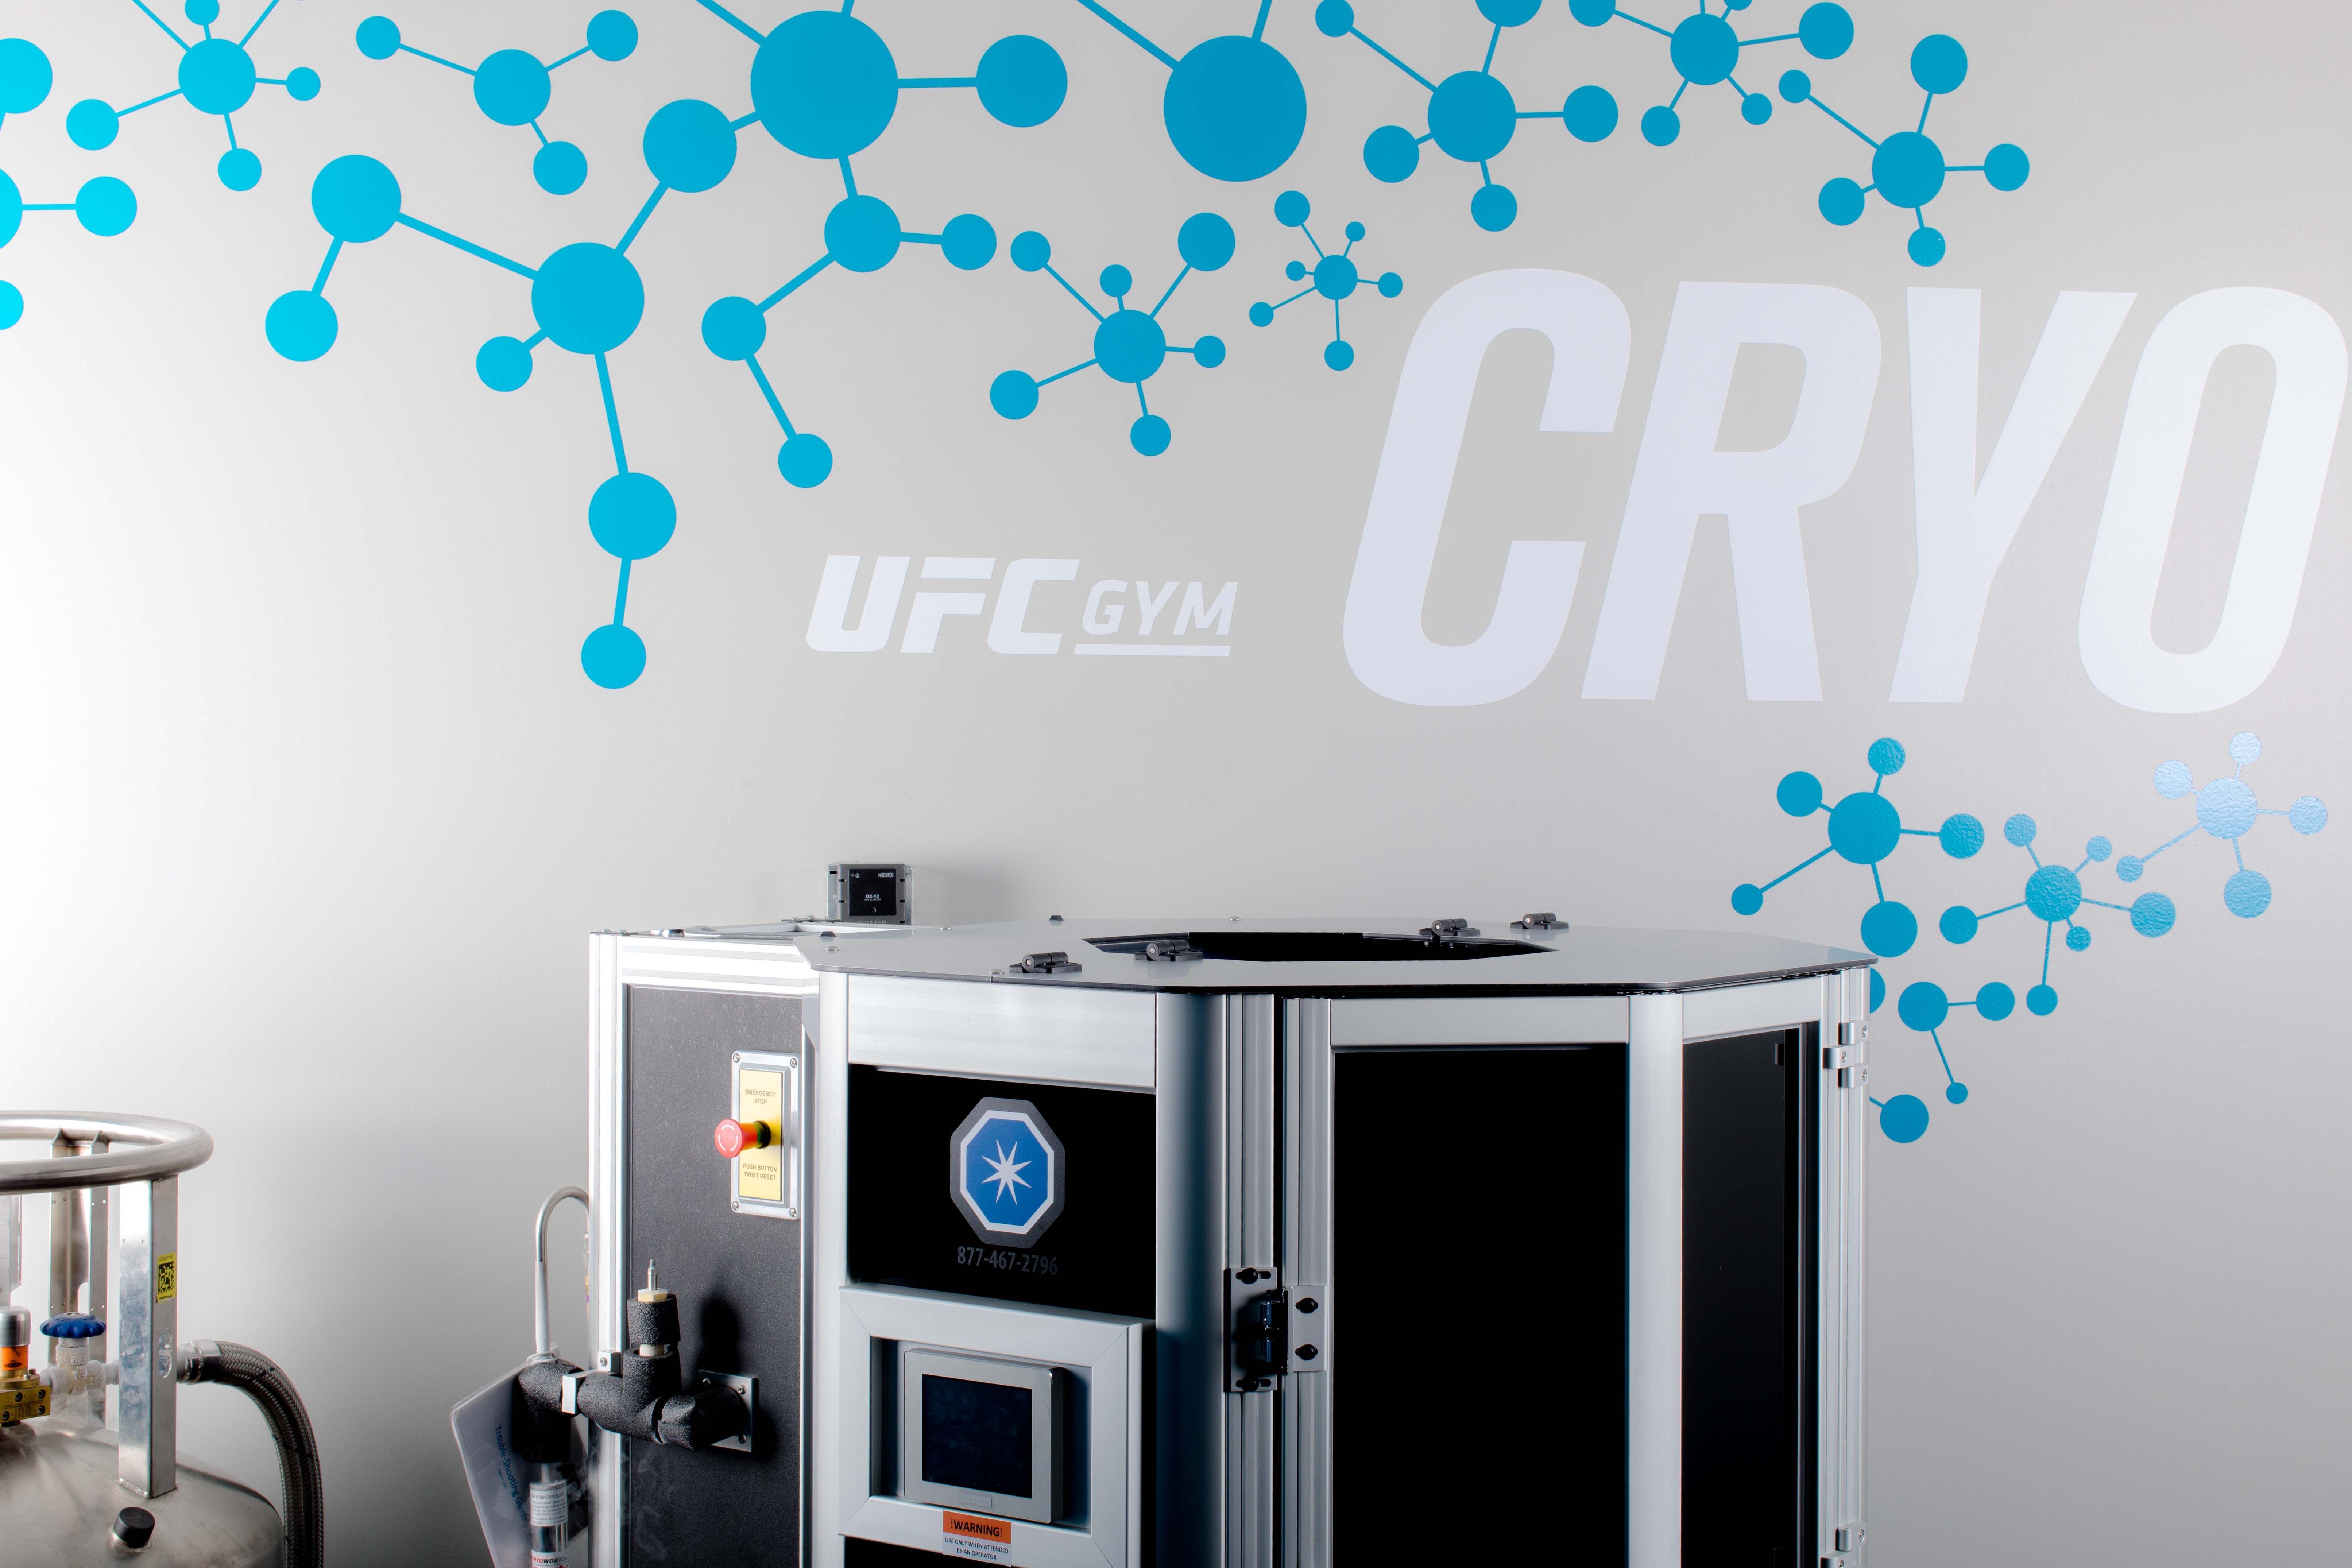 A cryotherapy machine